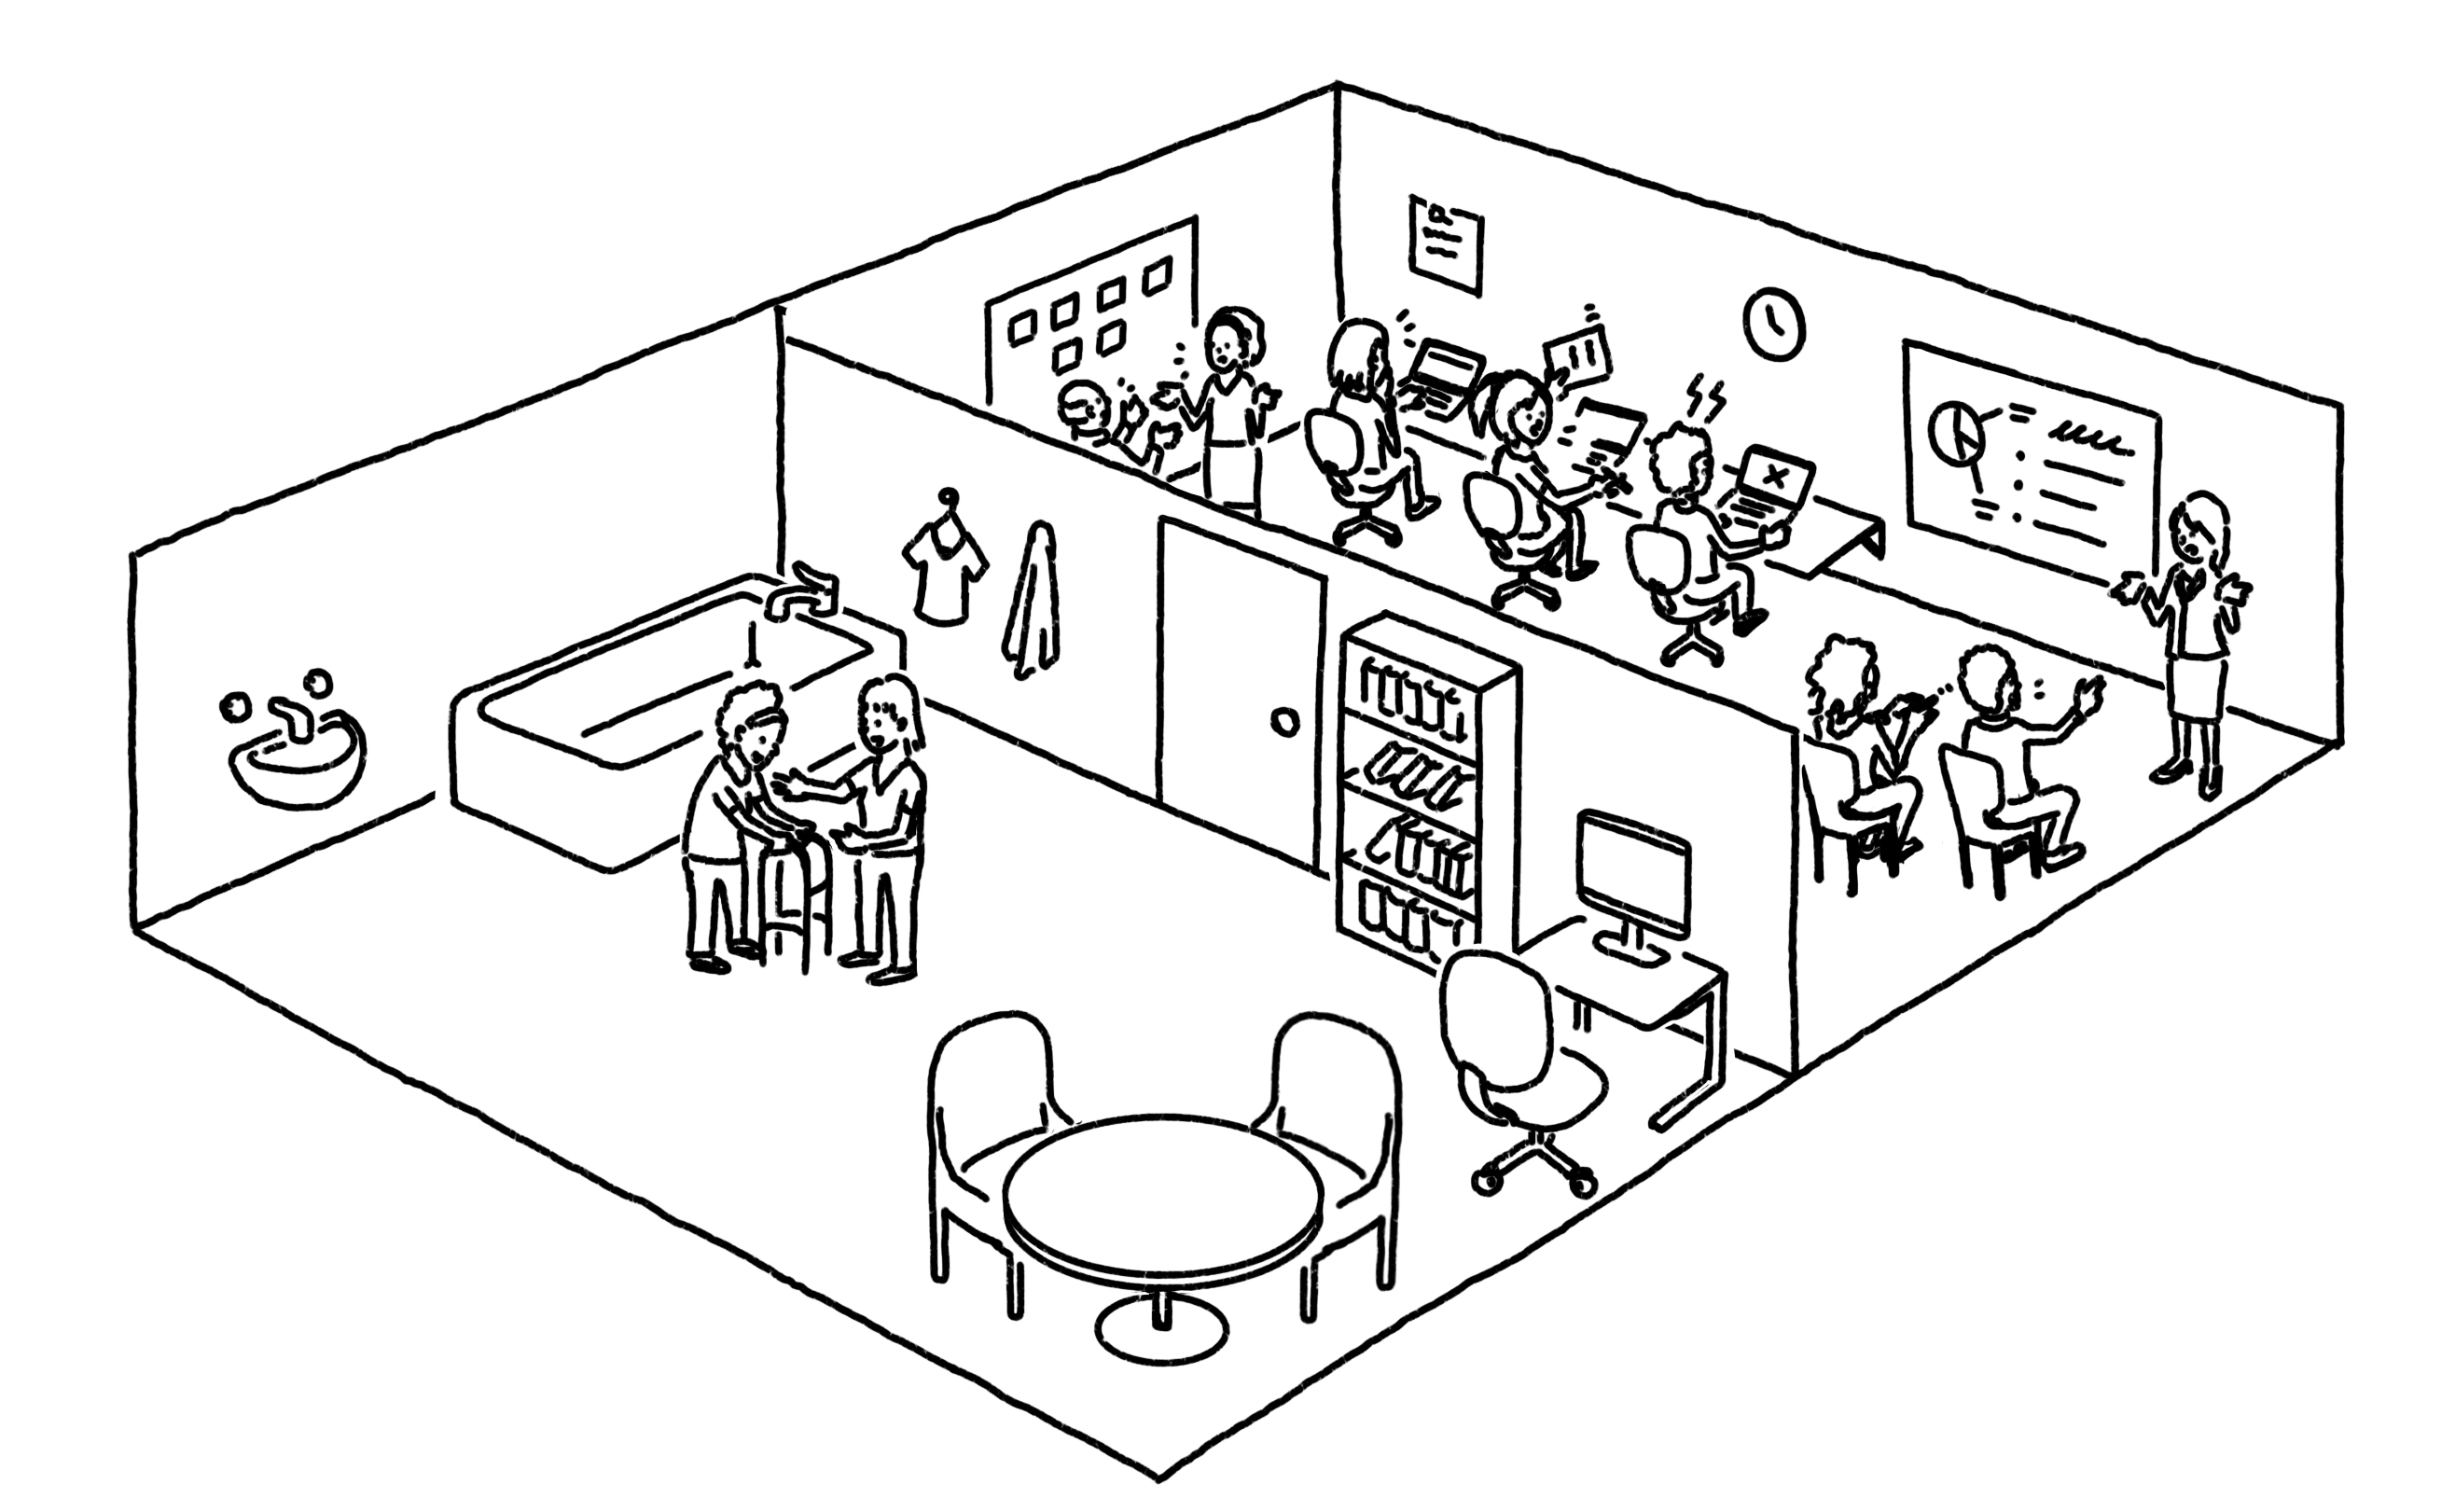 Illustration of a business with a front-room that serves a home care customer, and a back-room where the business operates.